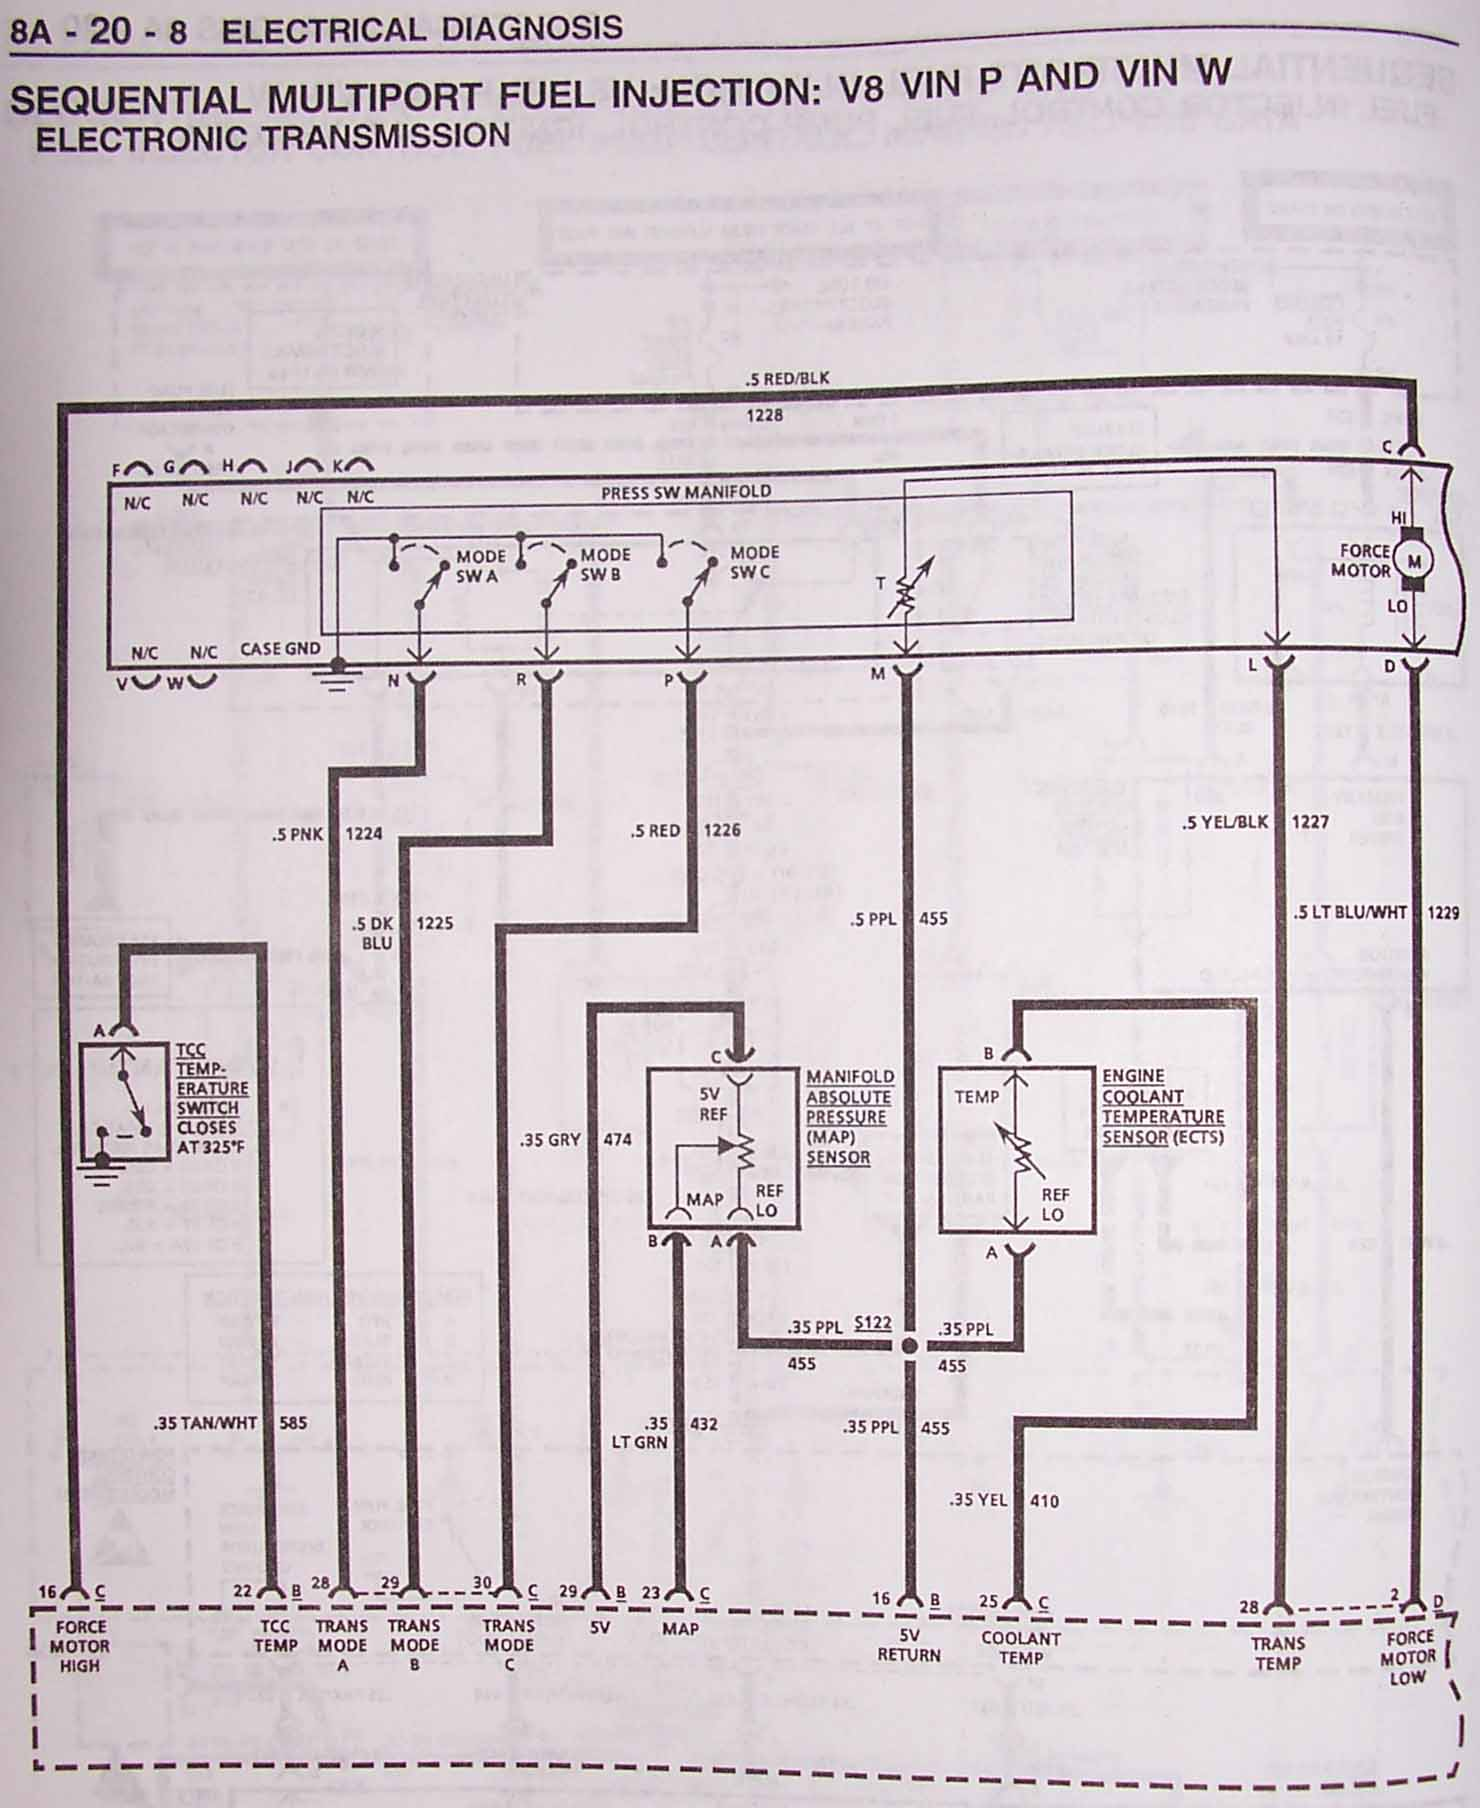 obd2 wiring diagram ls1 3 bank marine battery charger chevy lt1 engine wire harness | get free image about